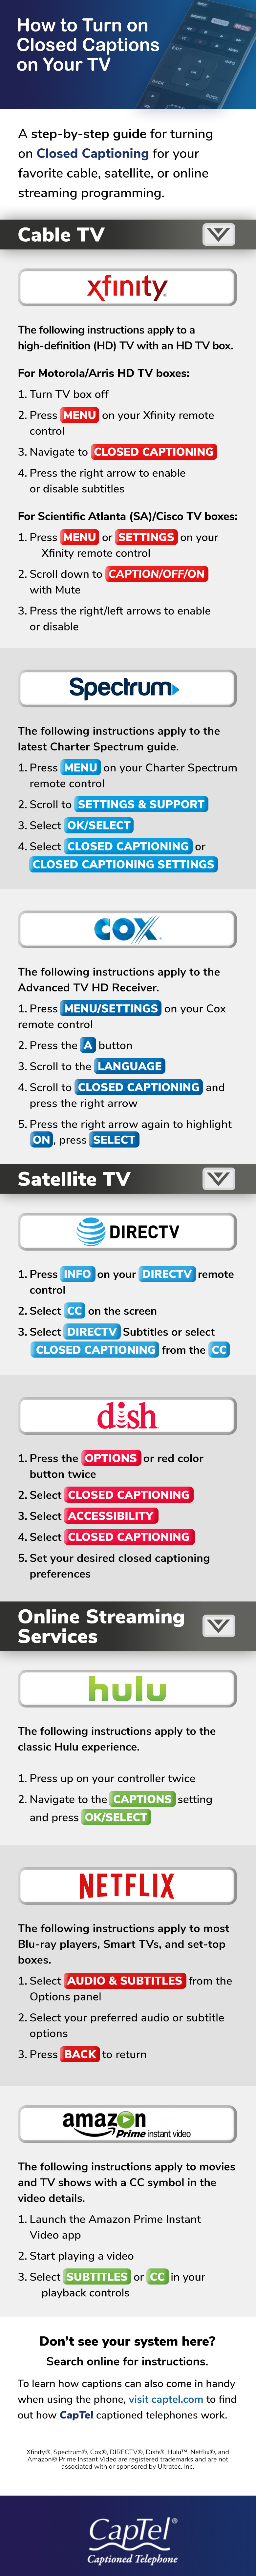 How to Turn on Closed Captions on Your TV [Infographic]